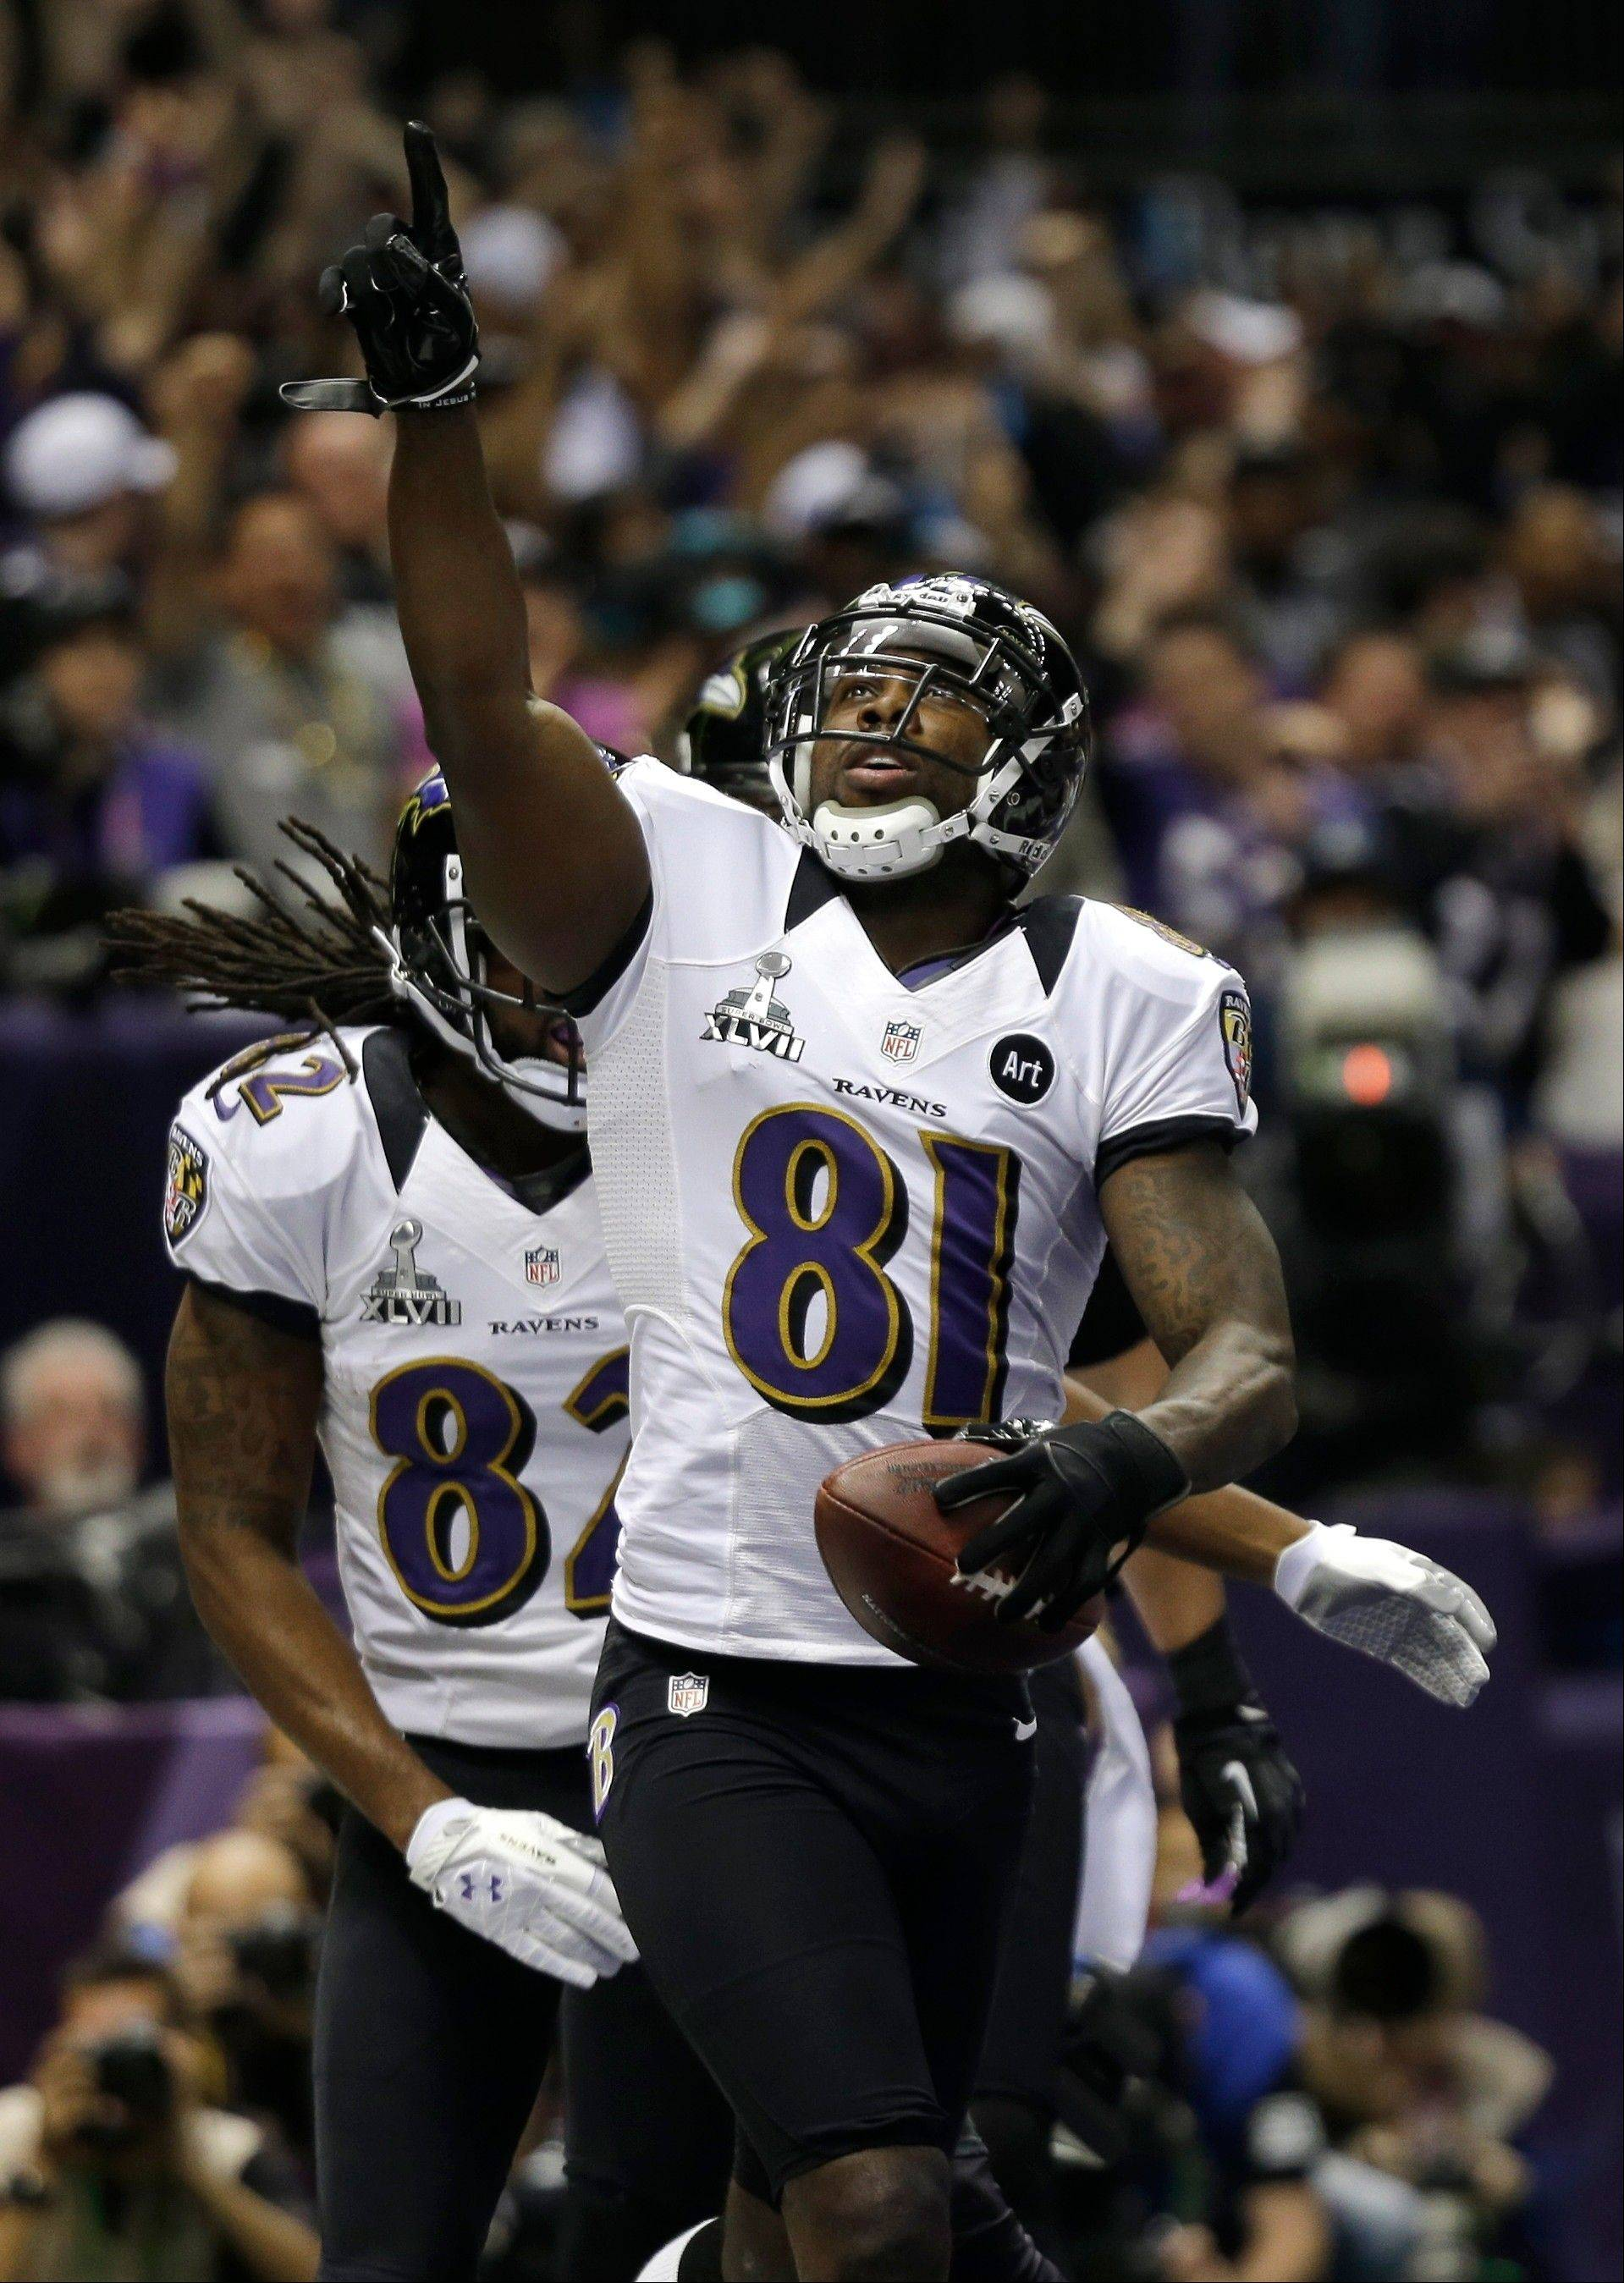 Baltimore Ravens wide receiver Anquan Boldin (81) reacts after catching a 13-yard touchdown pass during the first half.